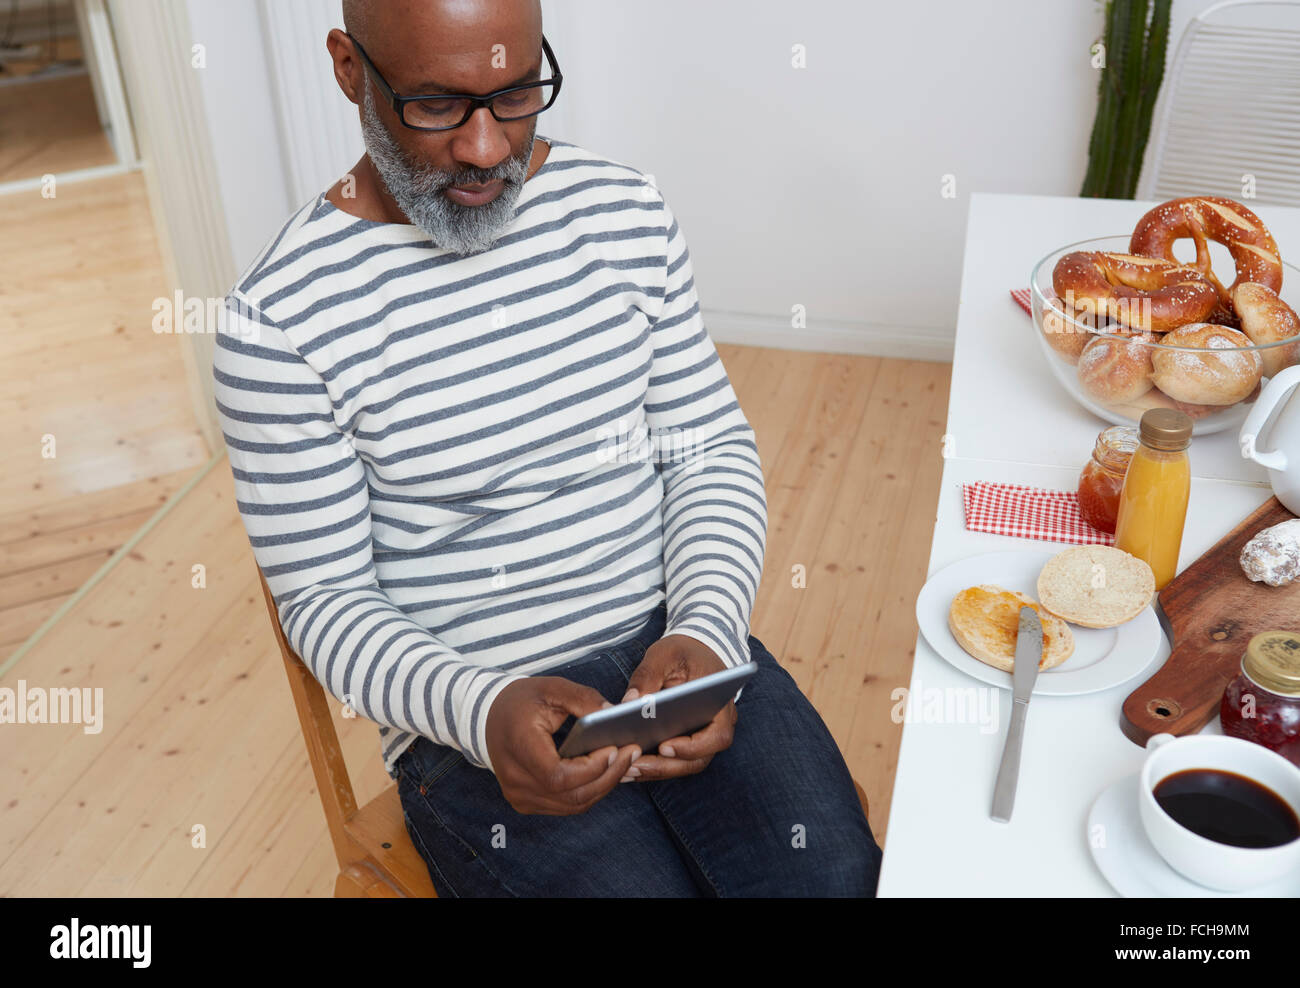 Man sitting at laid breakfast table using digital tablet - Stock Image